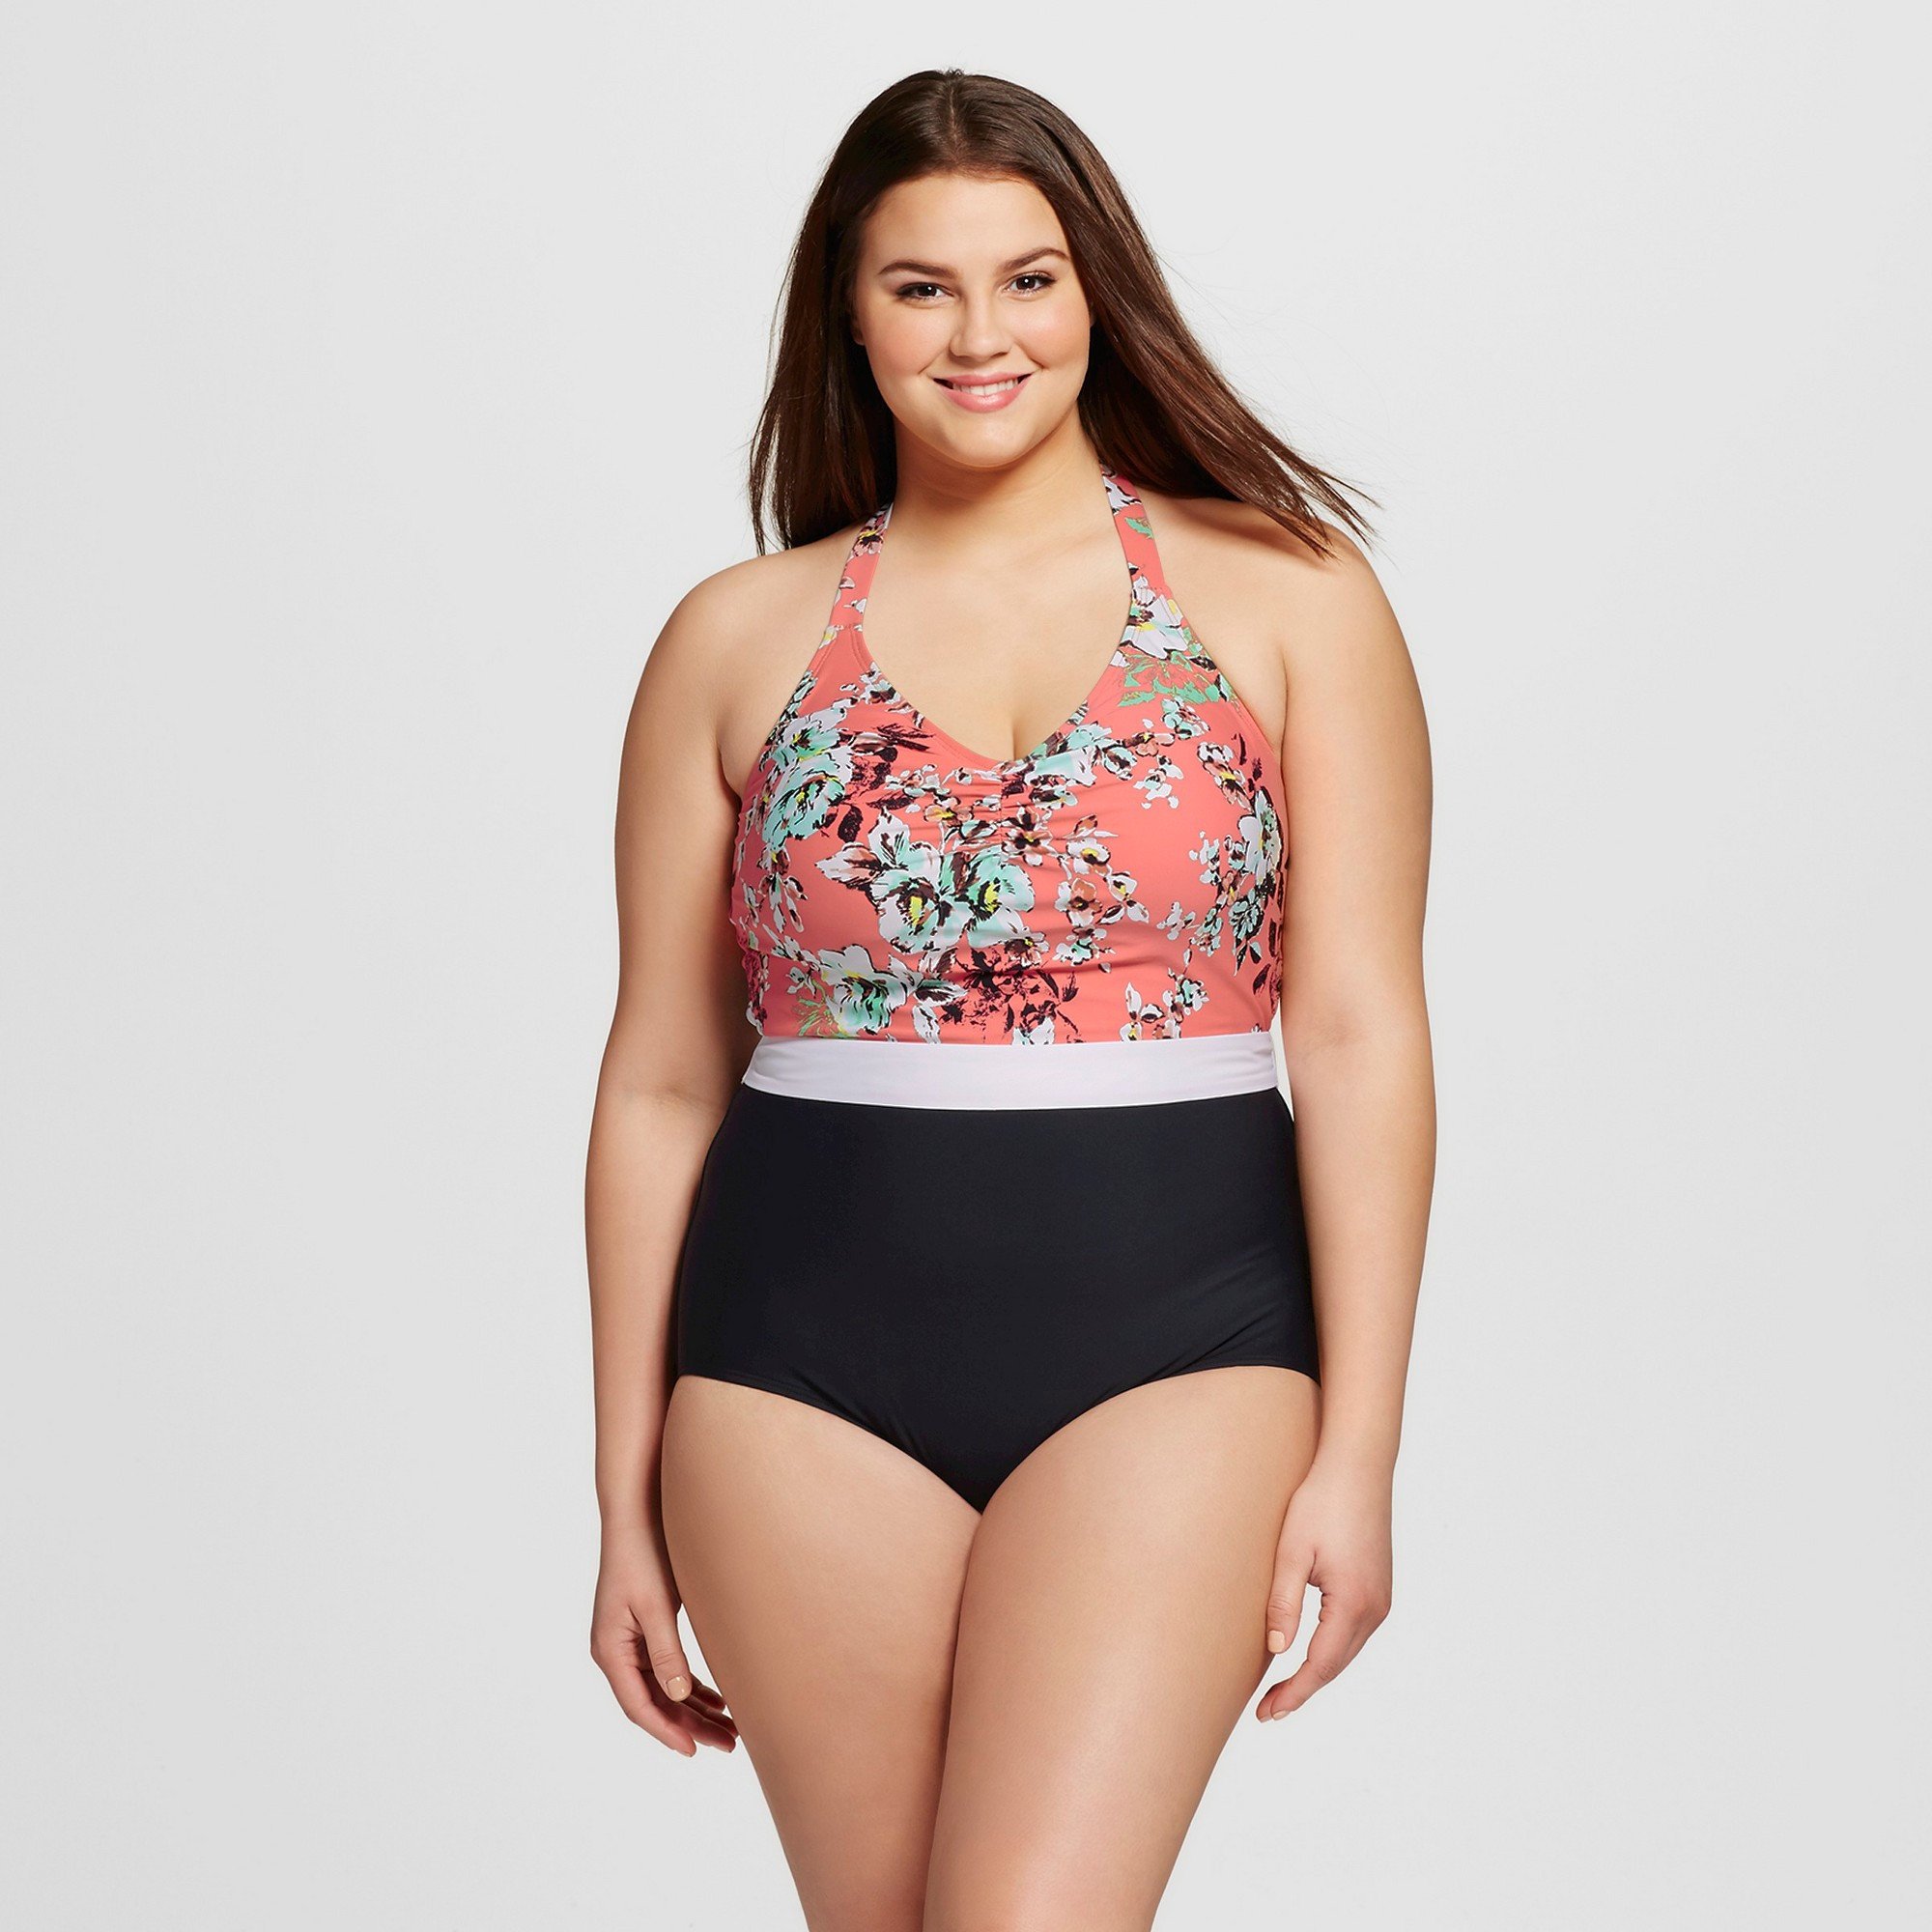 95d0b2f65be Women's Plus Size Vintage Floral Halter Maillot One Piece Swimsuit Coral  3X- Sea Angel, Size: 3XL, Pink